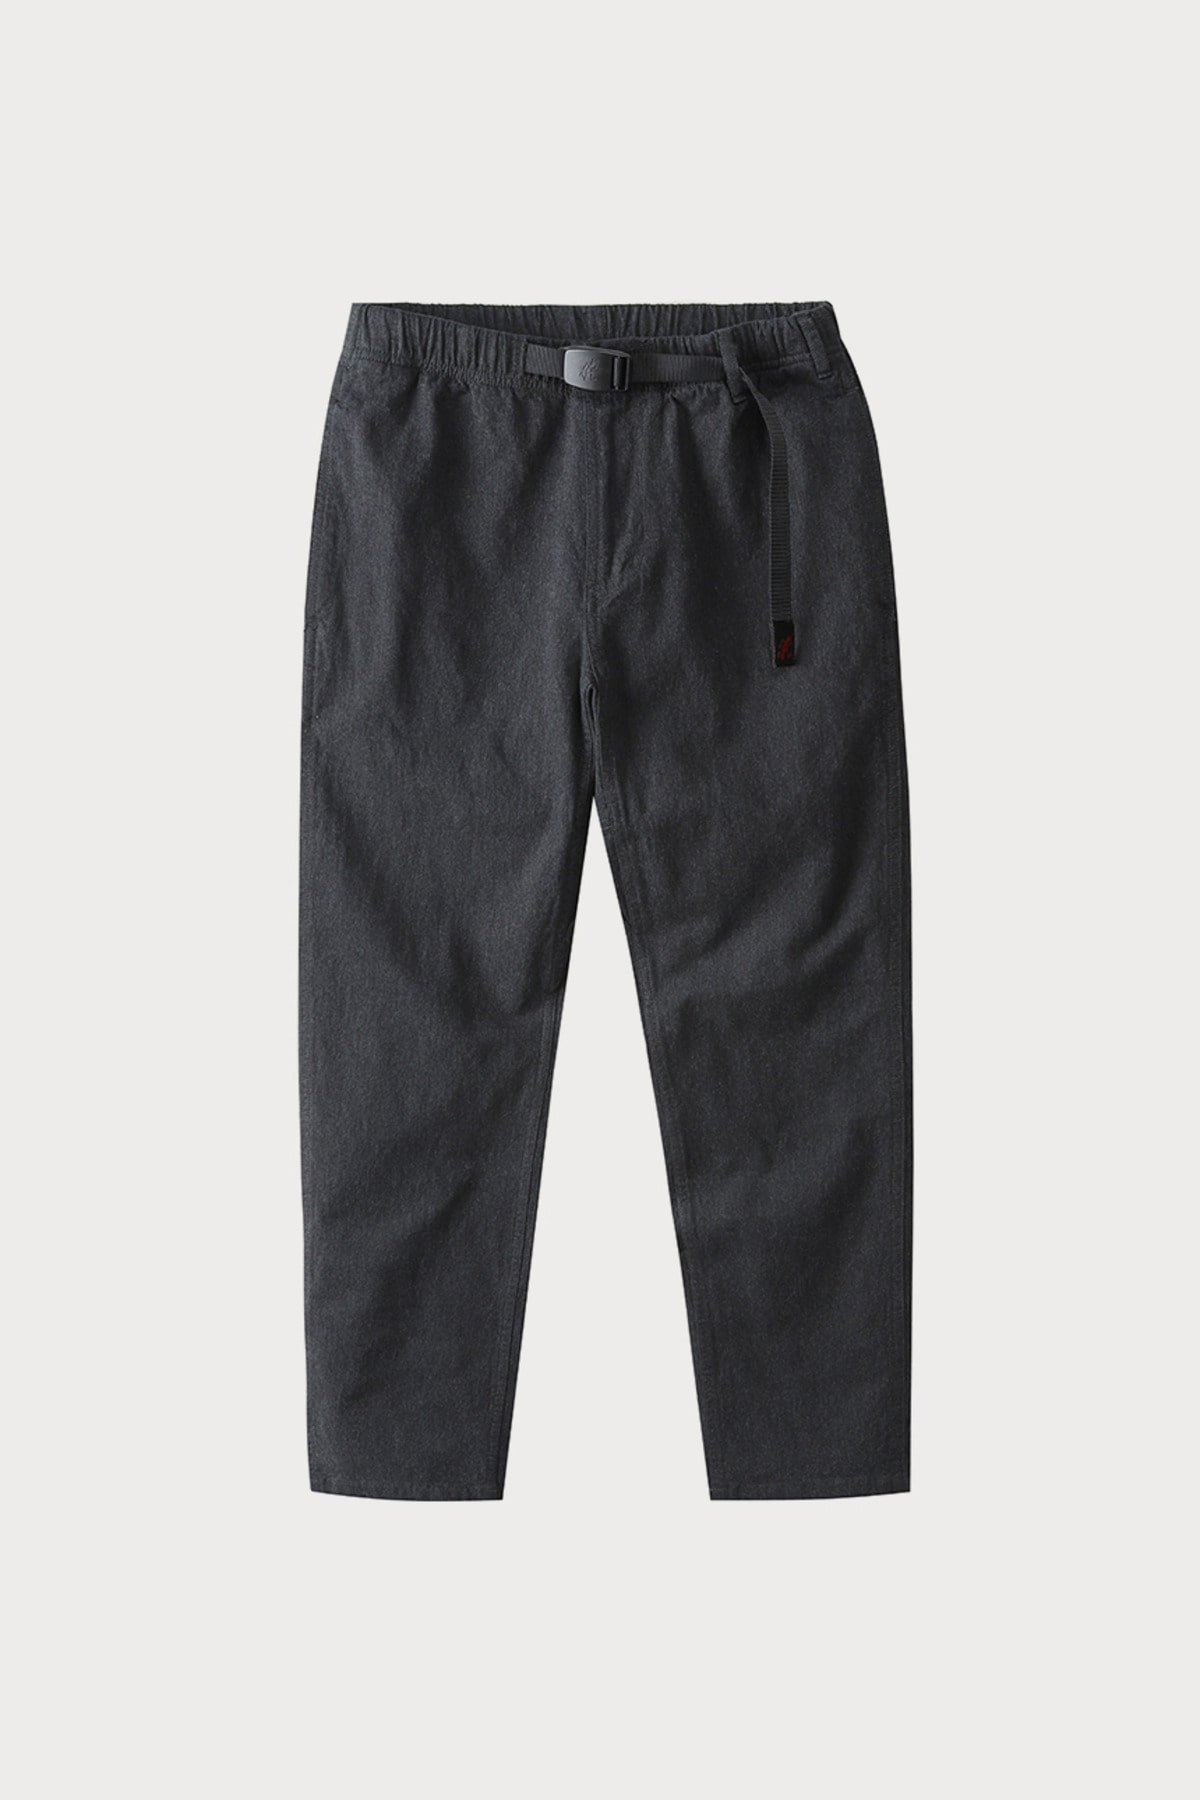 ST-PANTS HEATHER CHARCOAL